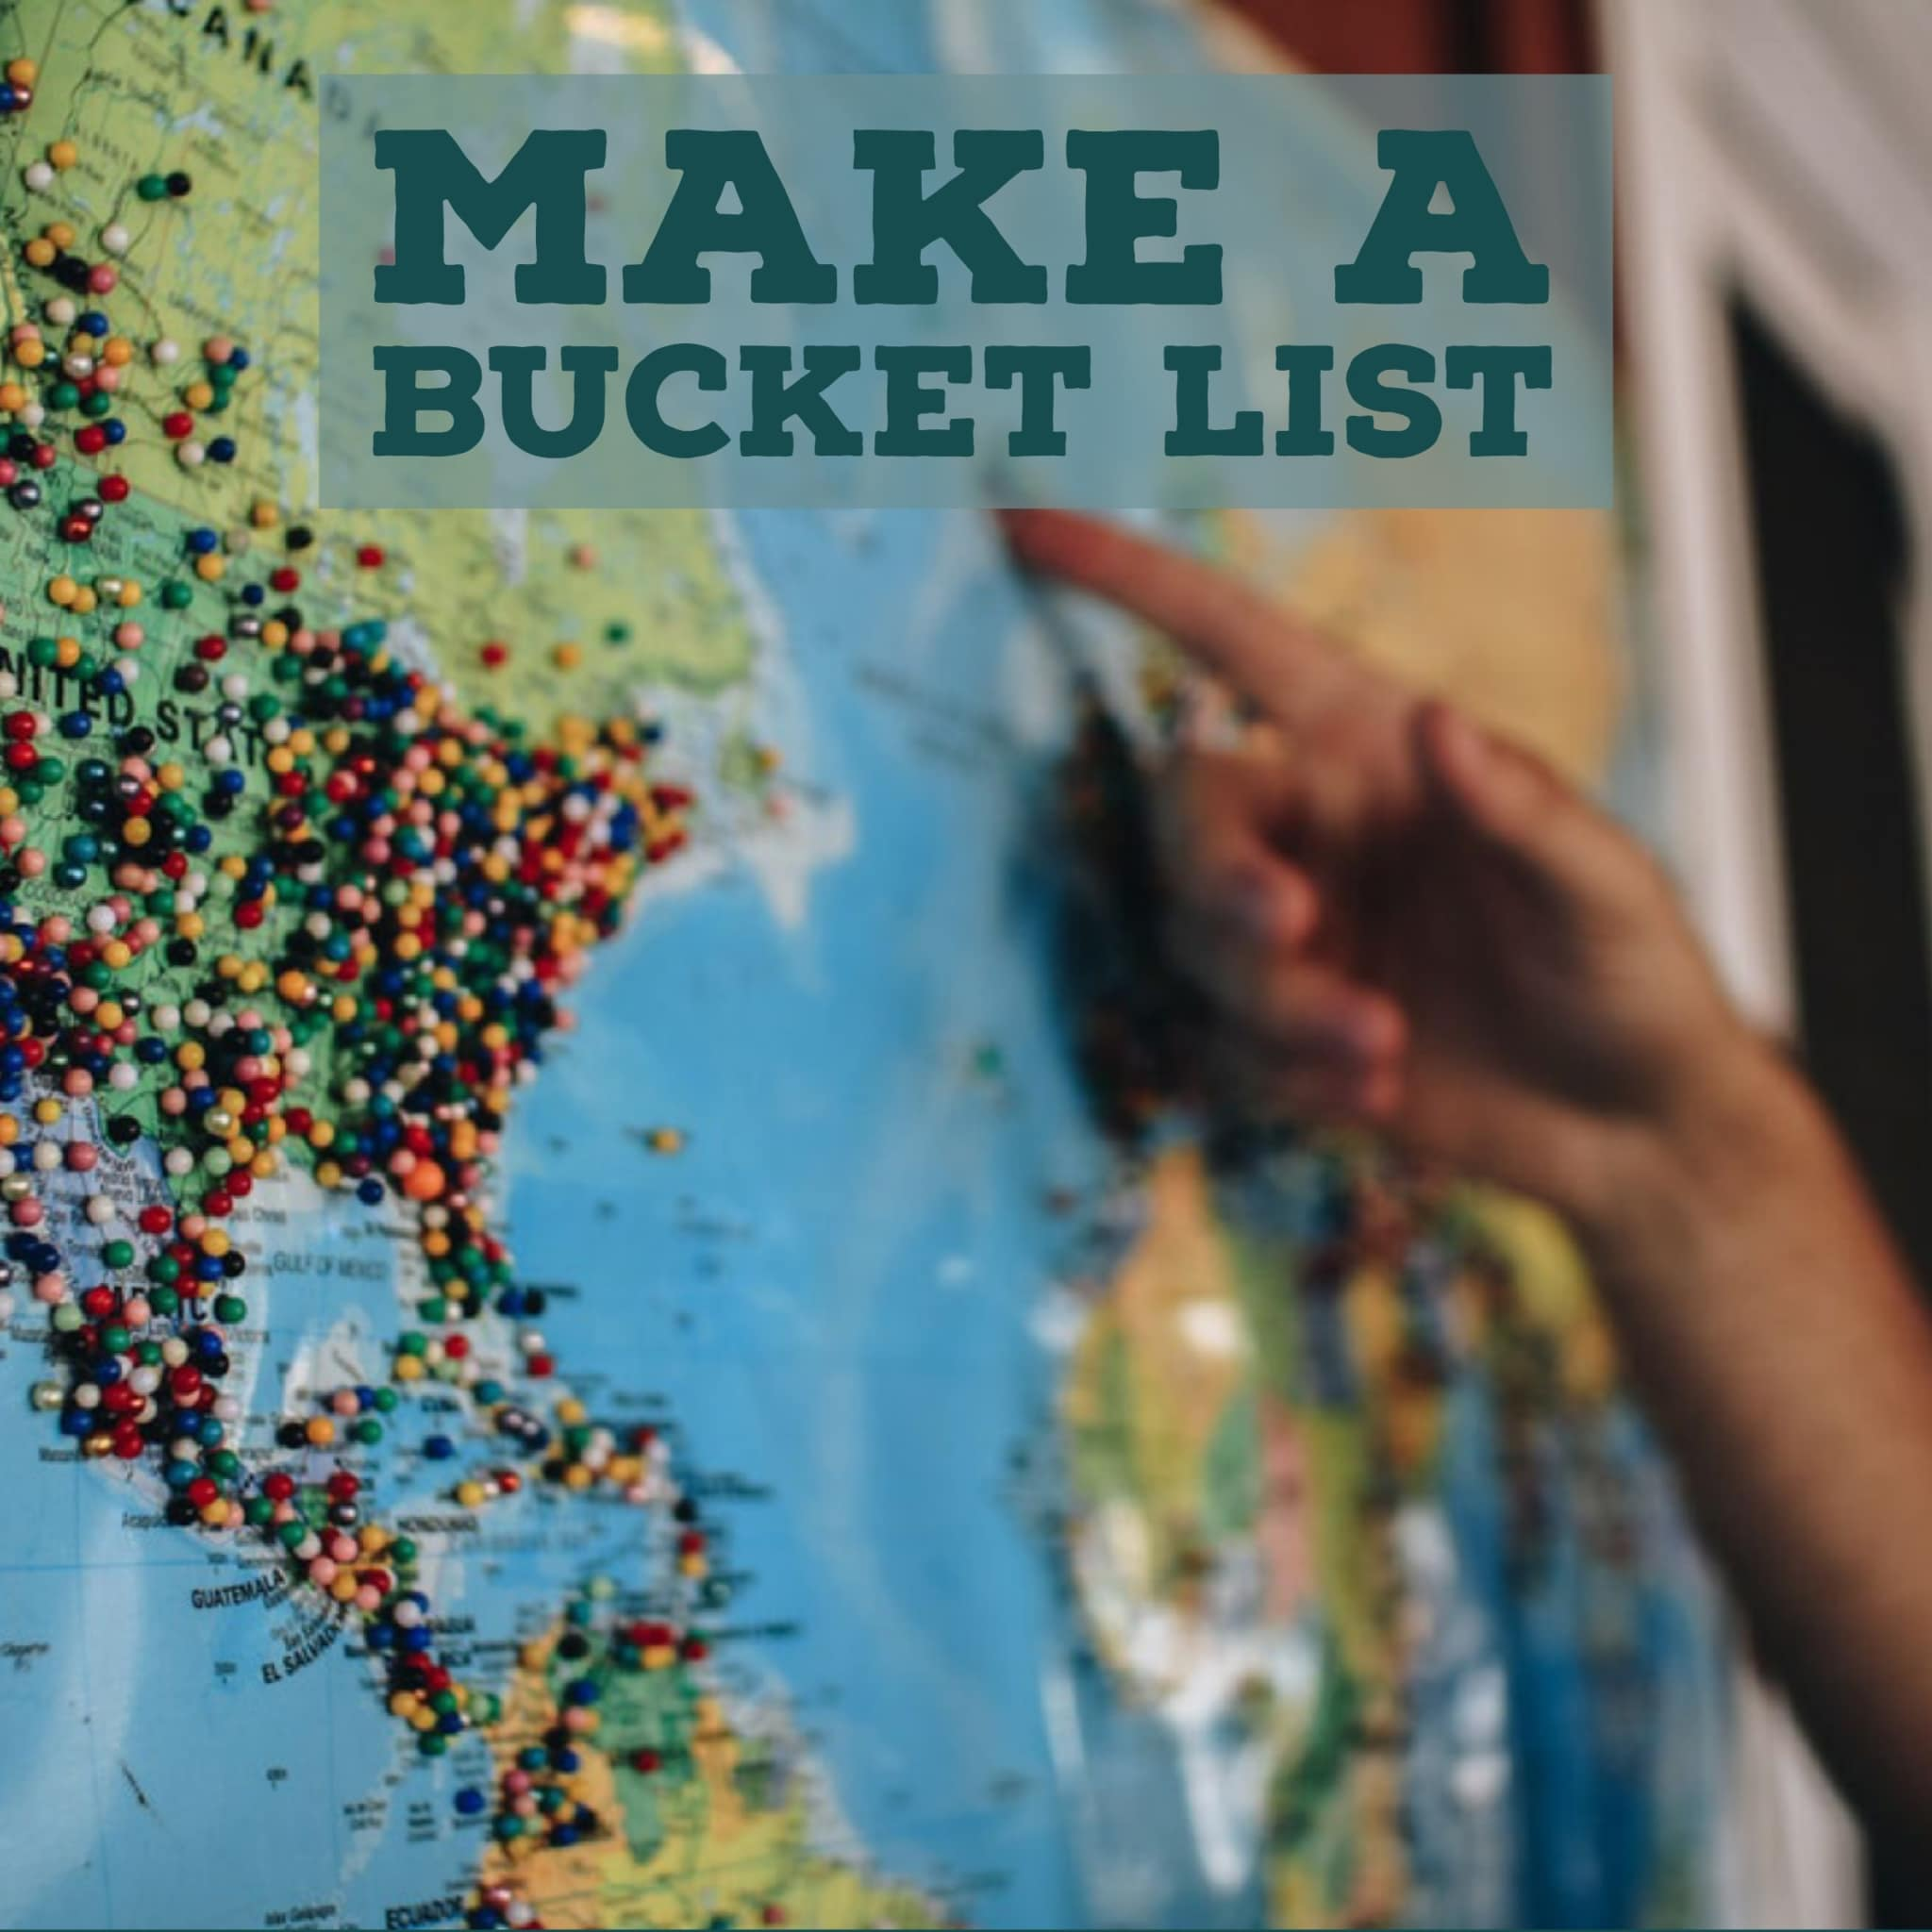 Make a Bucket List